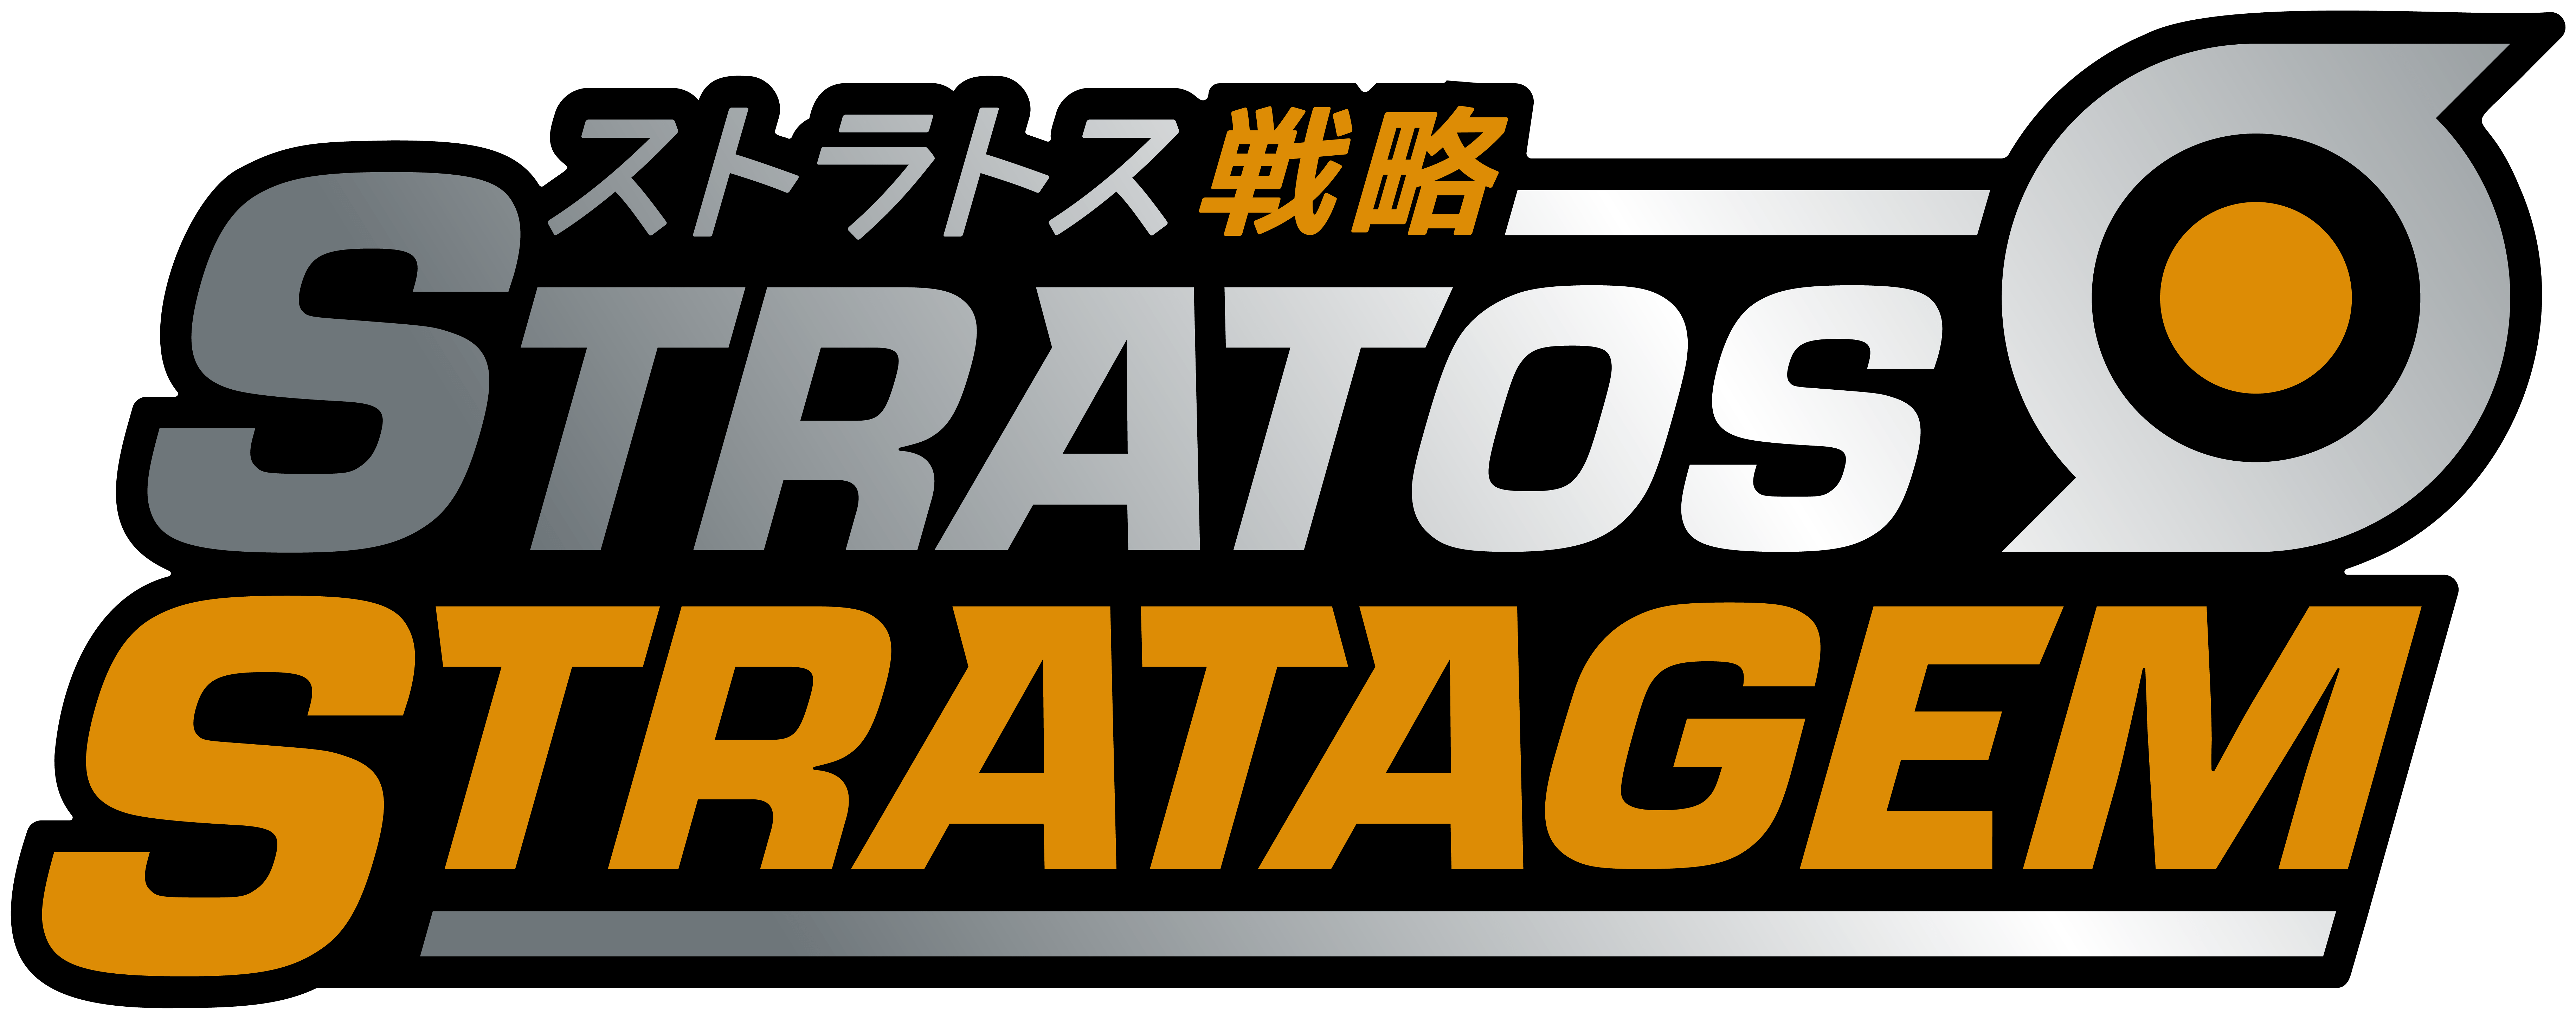 Stratos Stratagem - A Mecha Combat Strategy Game for 2-4 players